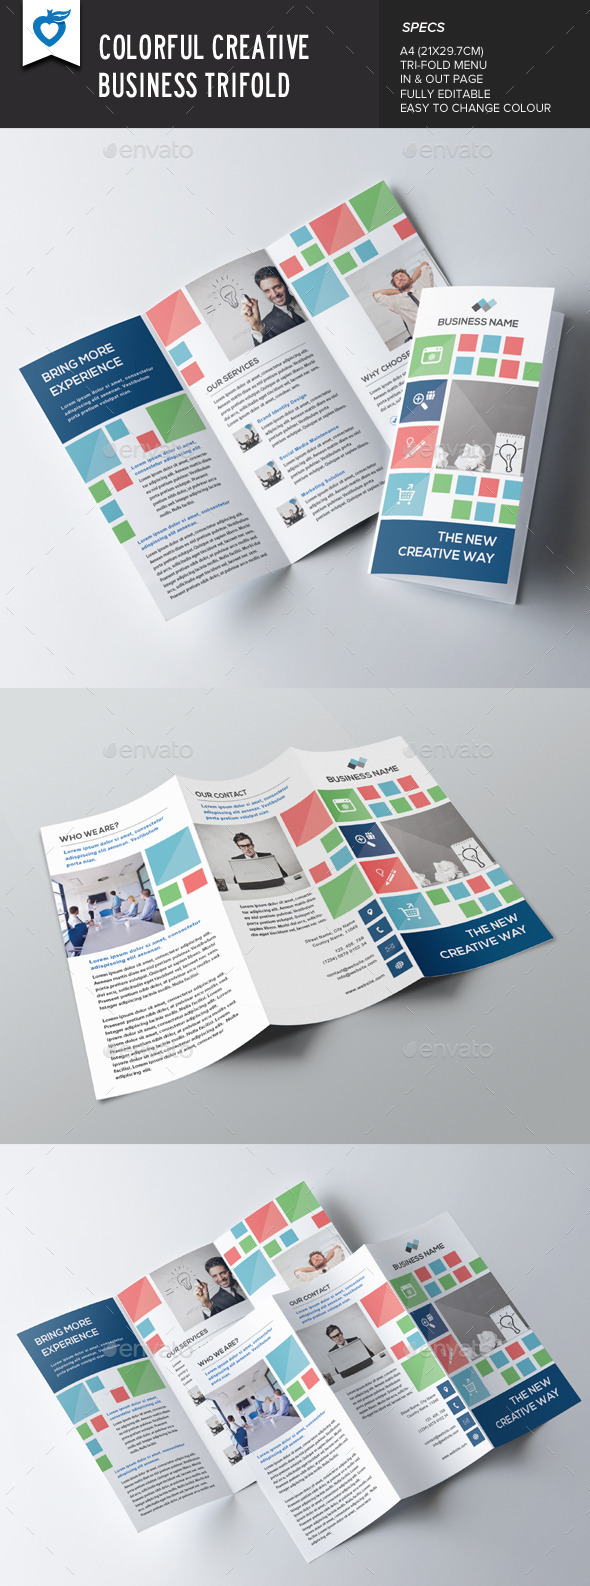 GraphicRiver Colorful Creative Business Trifold 9277163